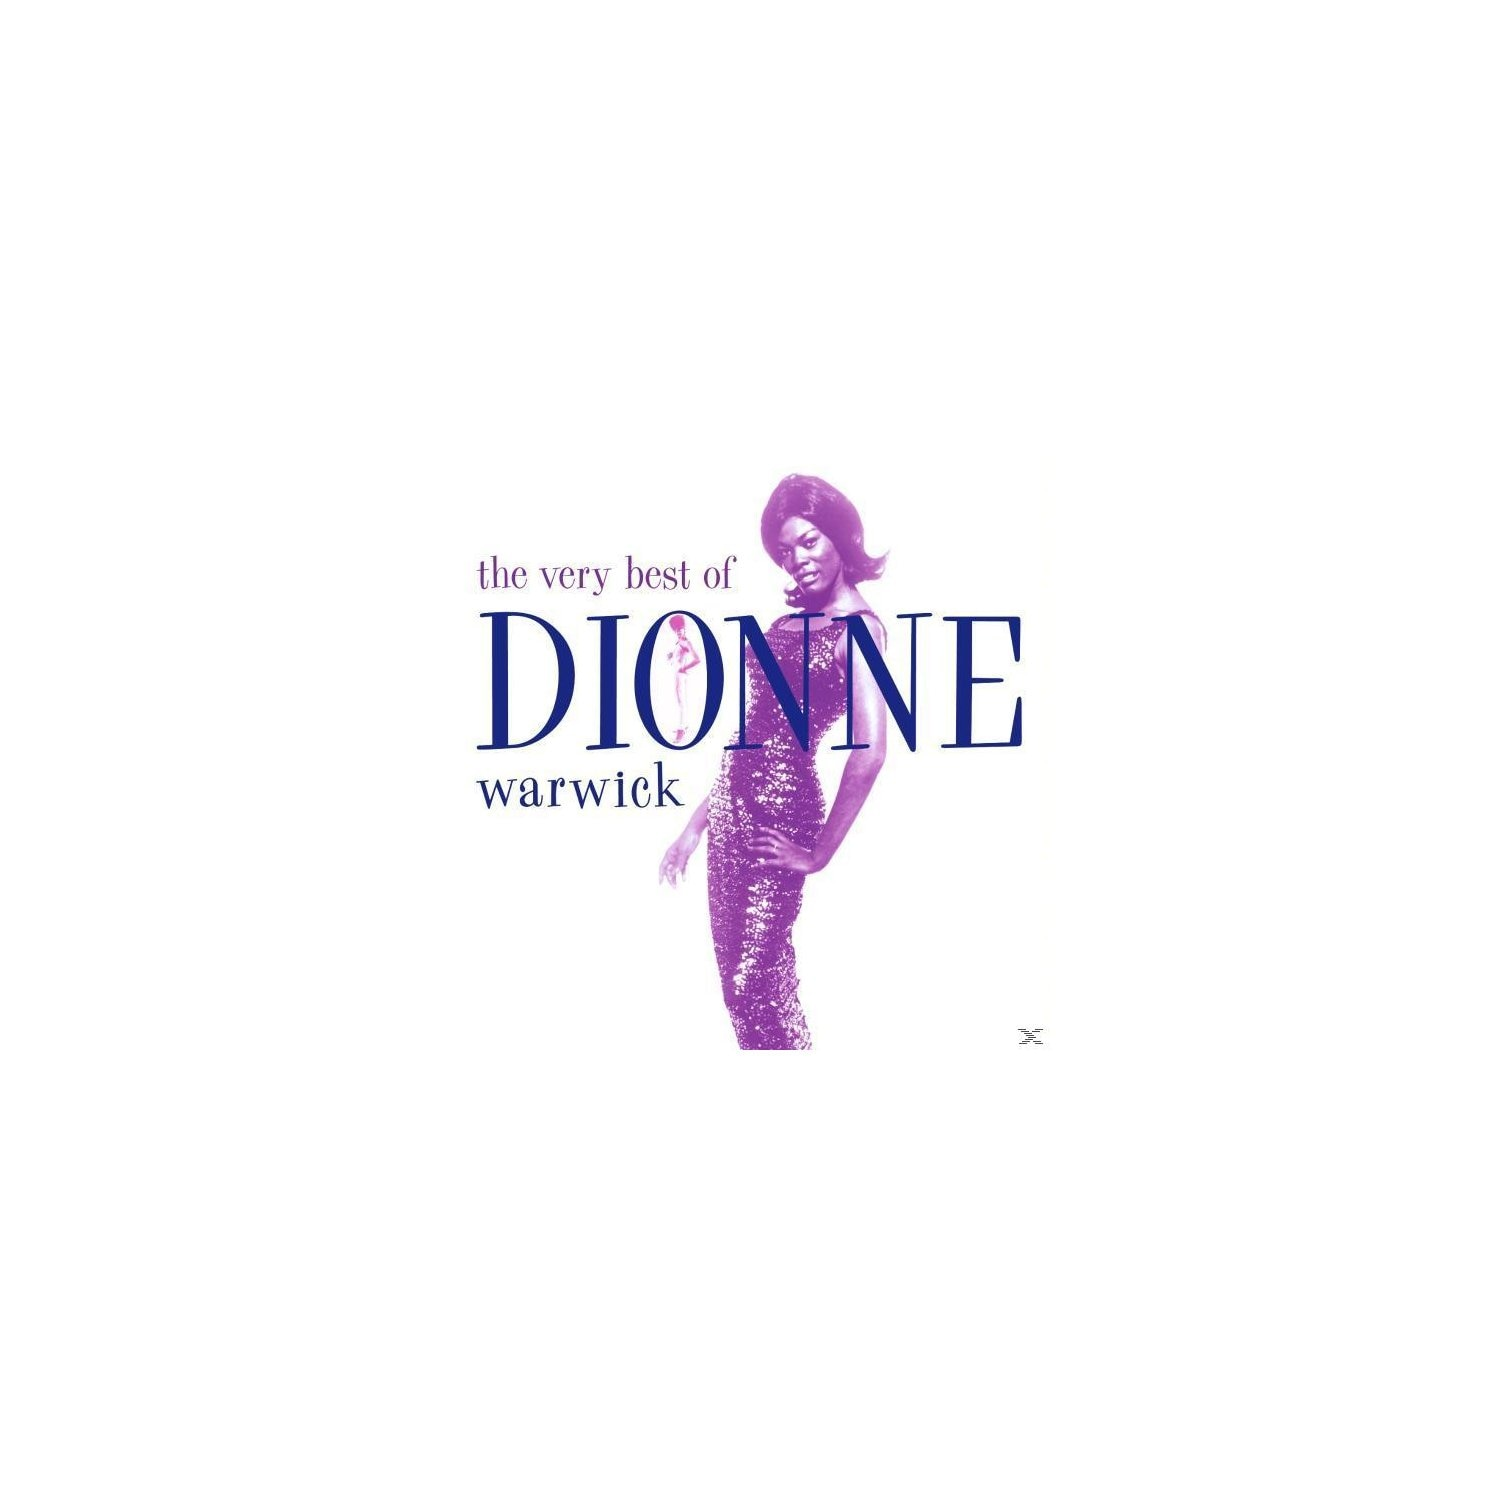 THE VERY BEST OF DIONNE WARWIC